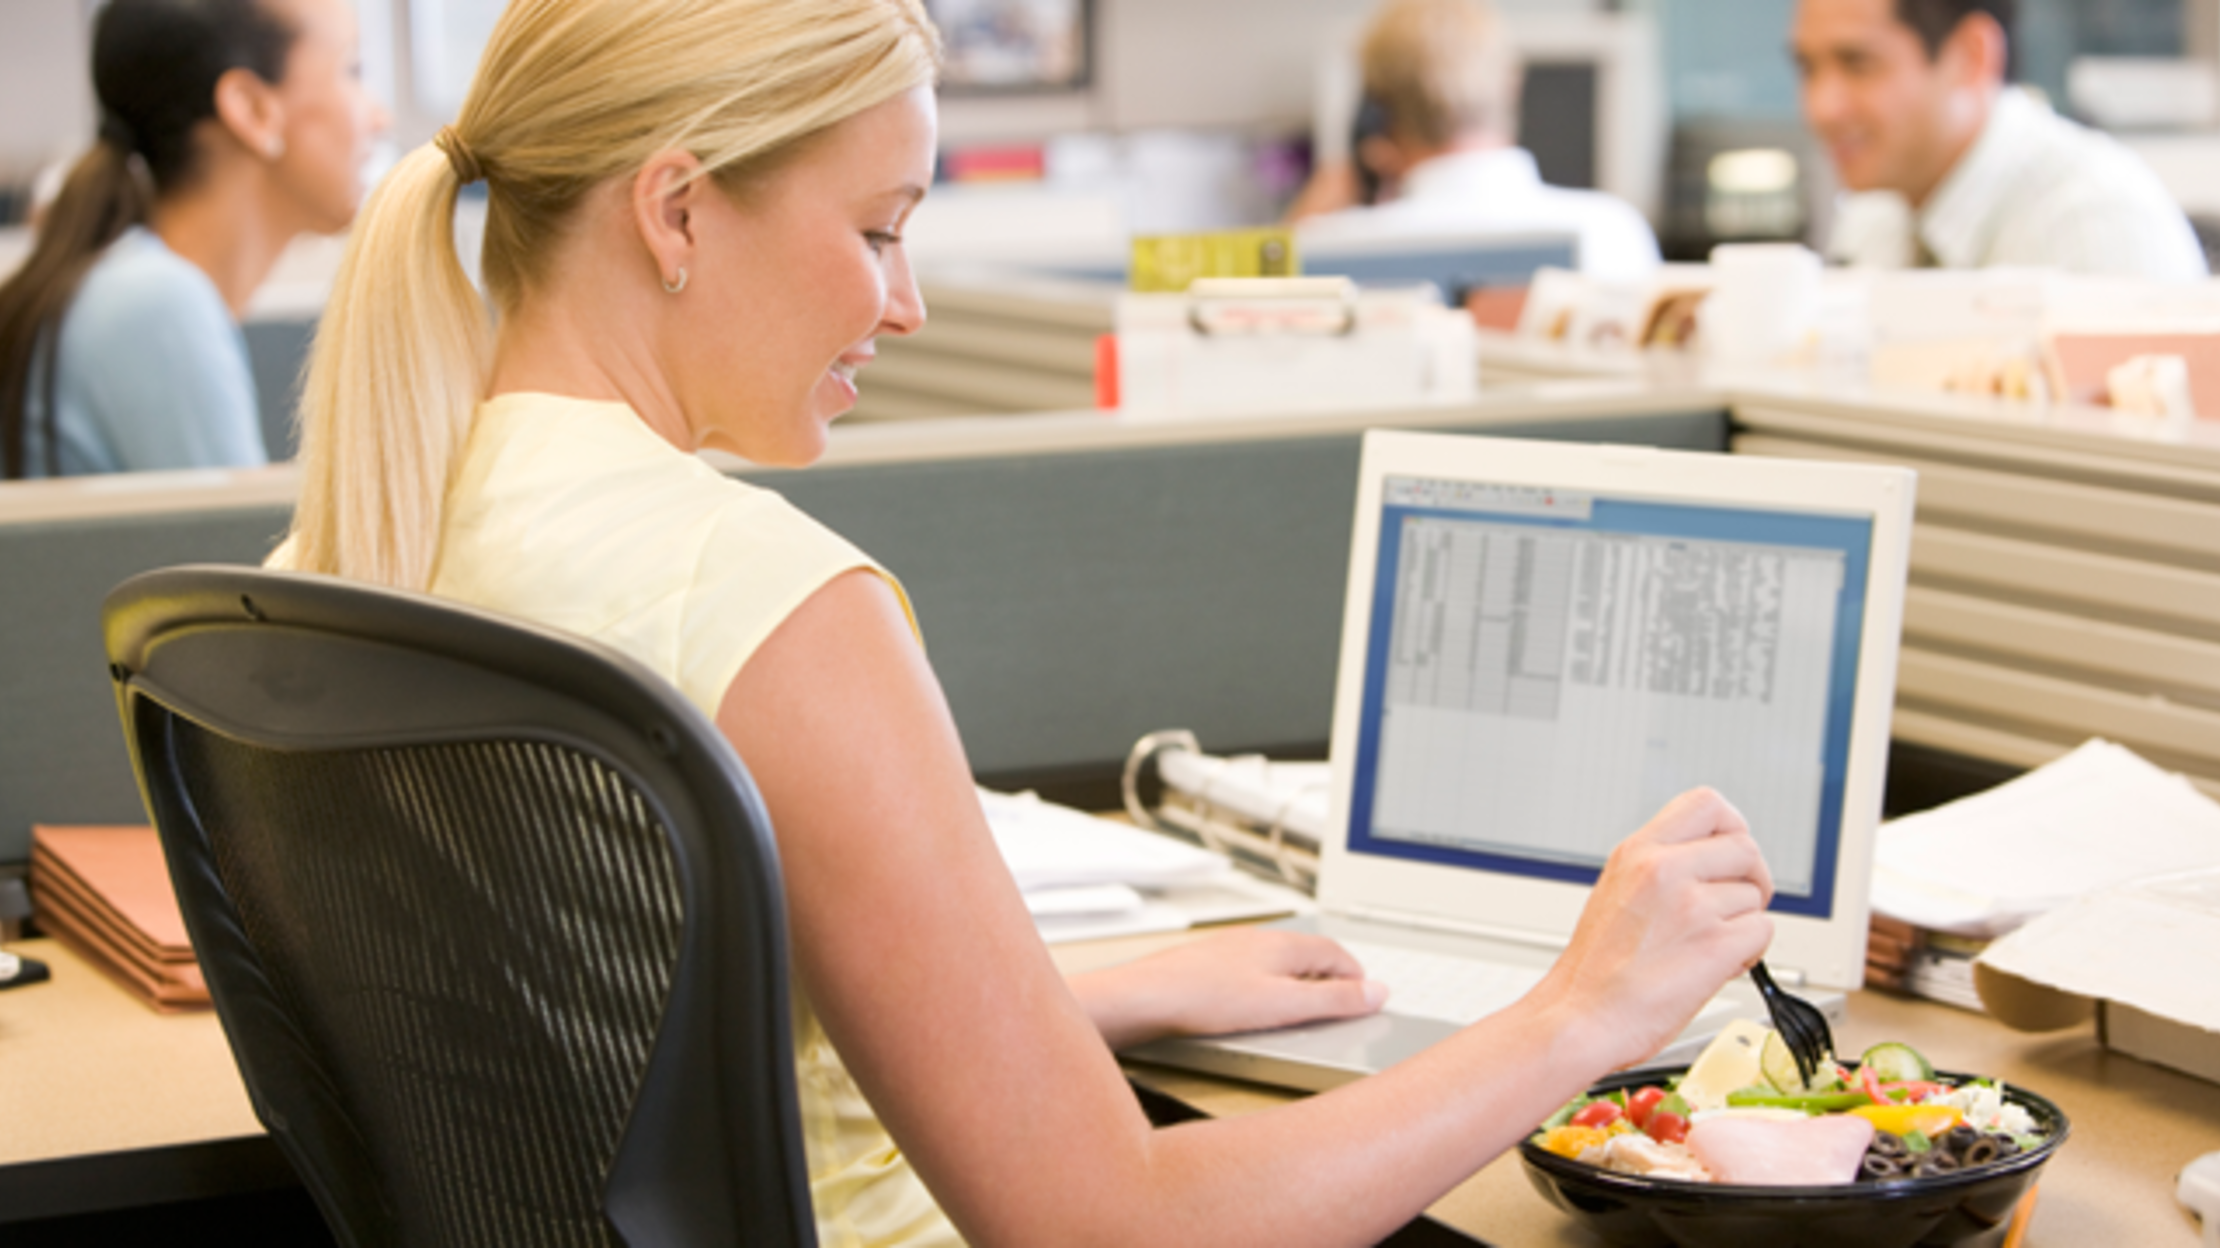 The Science of Why You Shouldn't Eat at Your Desk